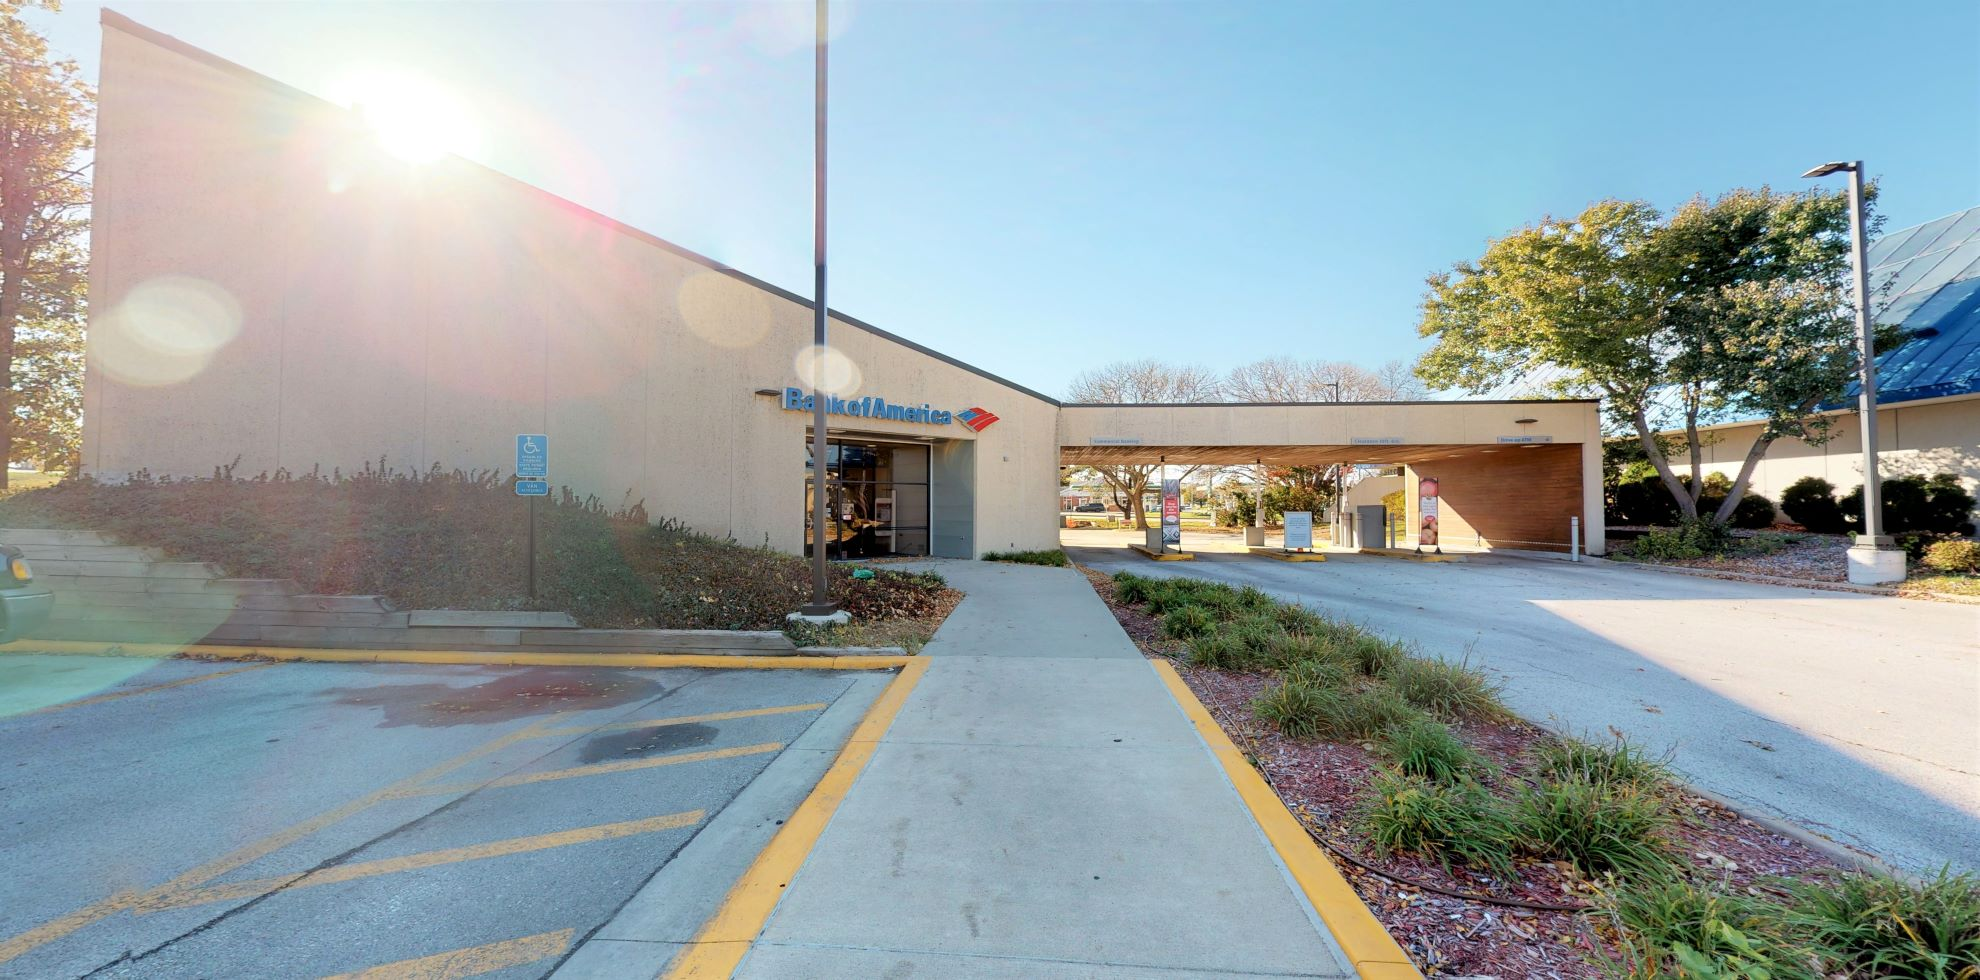 Bank of America financial center with drive-thru ATM and teller   3400 Westown Pkwy, West Des Moines, IA 50266